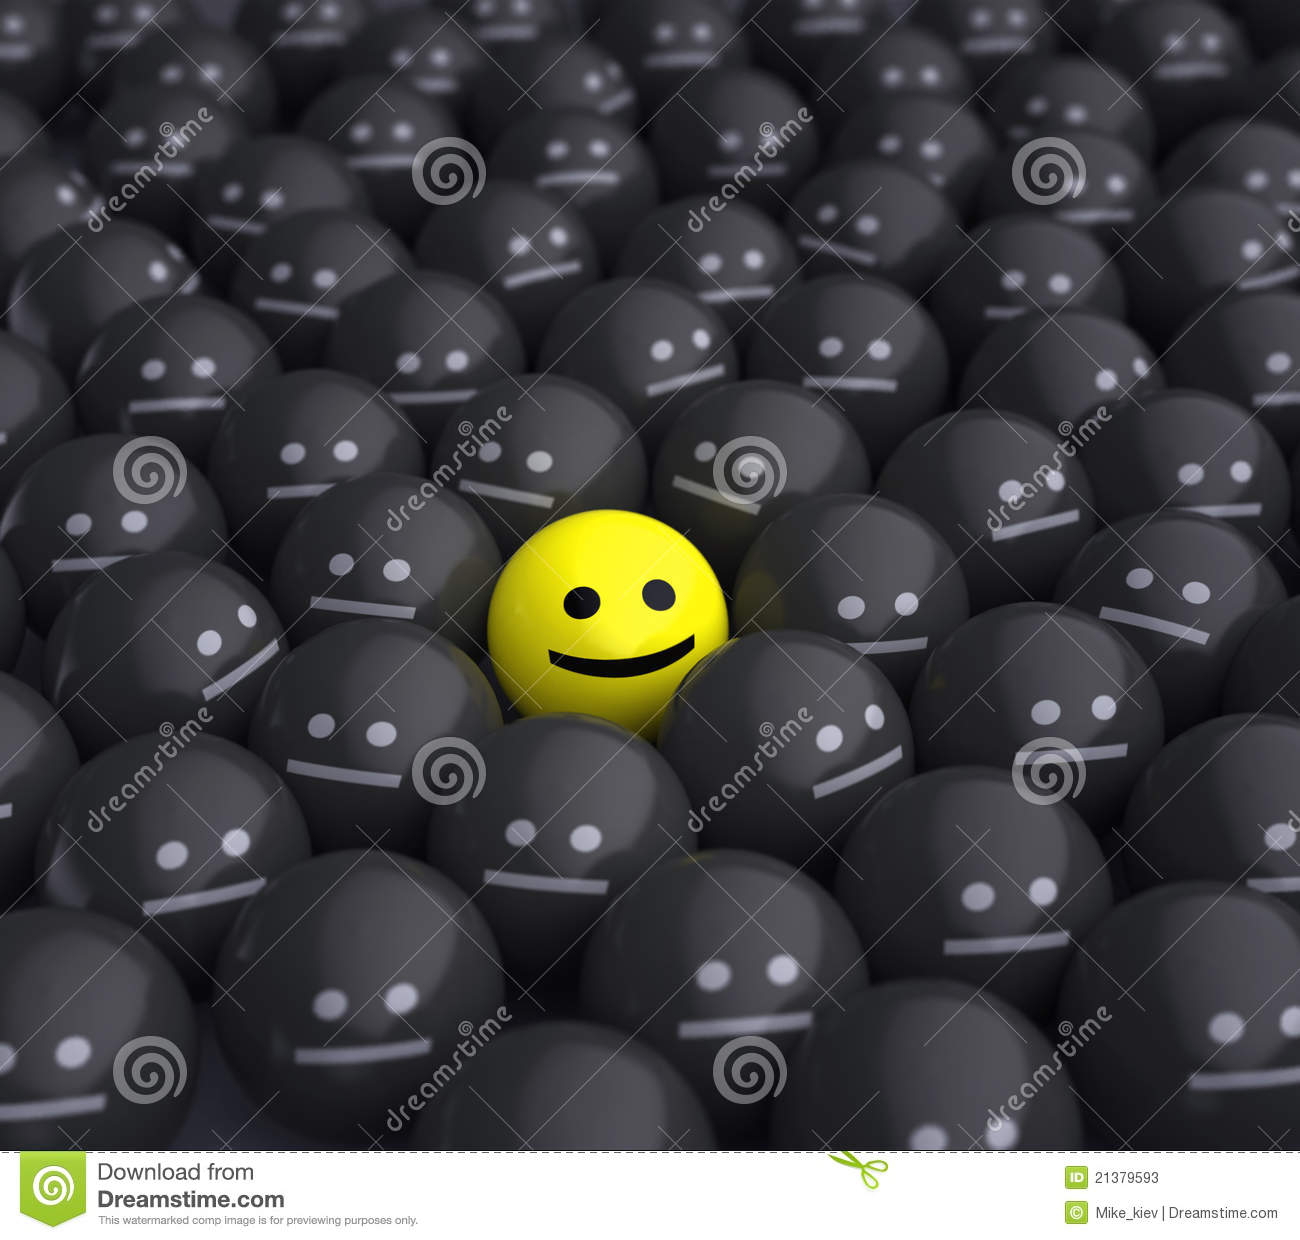 Smile in the middle of grey crowd